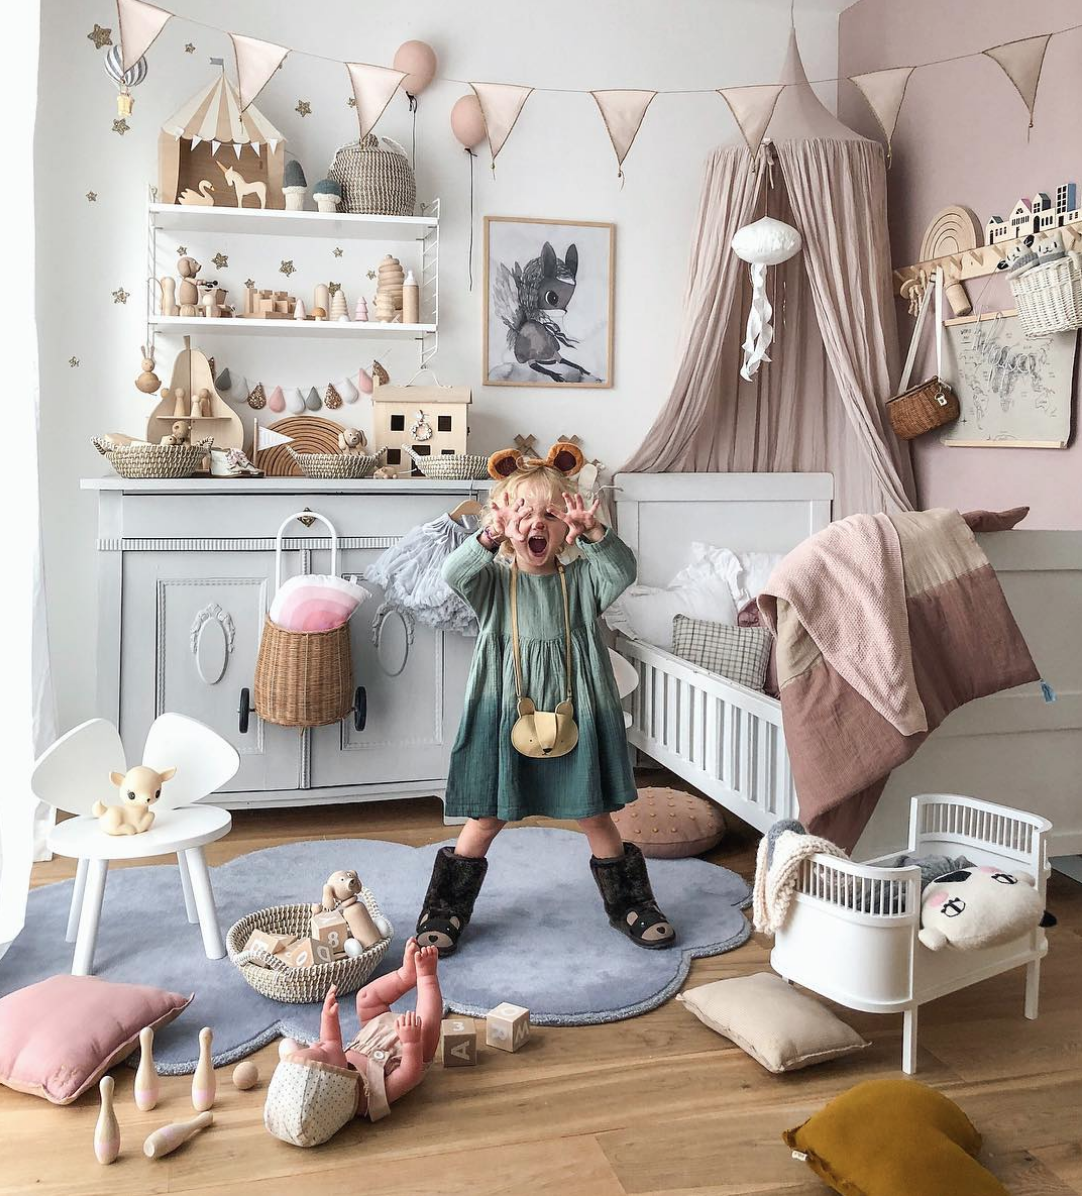 How Beautiful Is This Whimsical And Creative Nursery And Playroom By